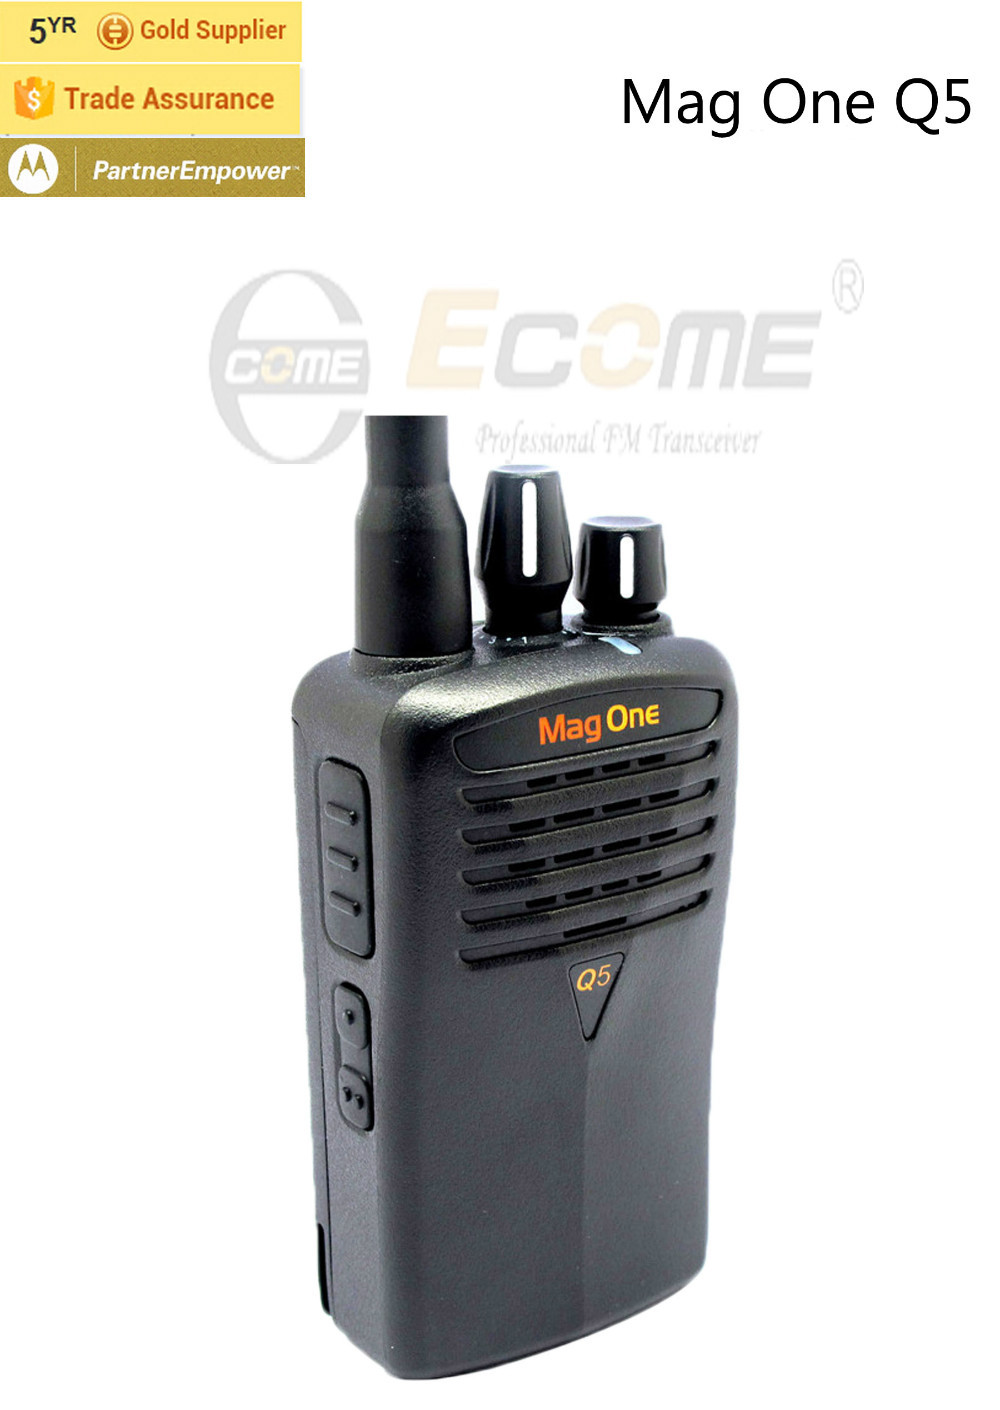 Us 1800 High Quality Intercom Handy Walkie Talkie Motorola Mag One Q5 In From Cellphones Telecommunications On Alibaba Group